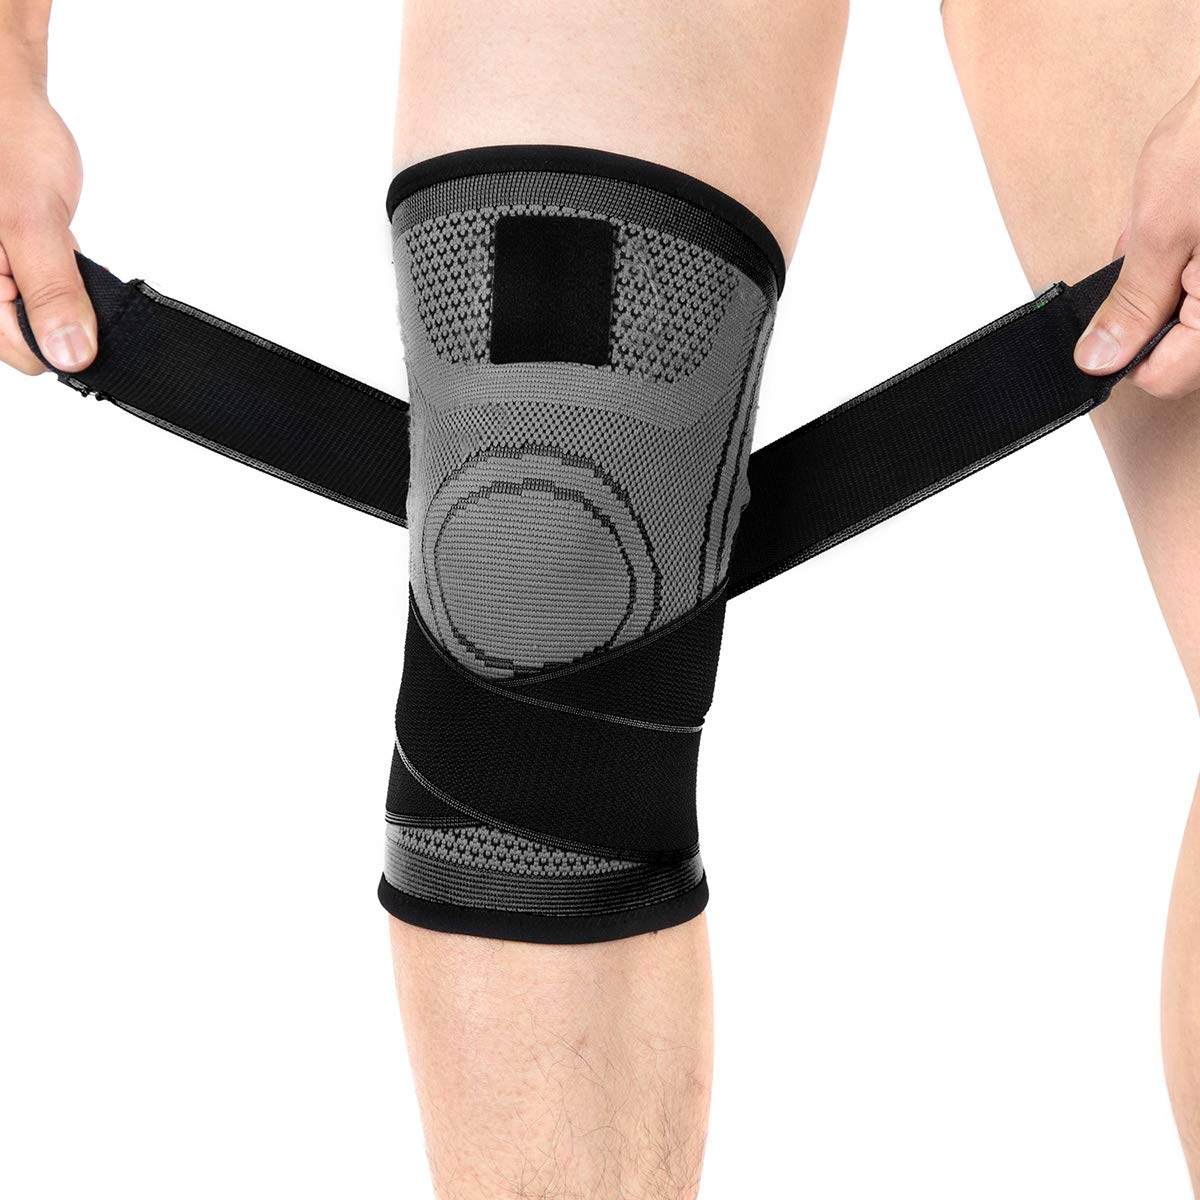 Knee Support Professional Protective Sports Knee Pad Breathable Bandage Knee Brace Basketball Tennis Cycling Artynes